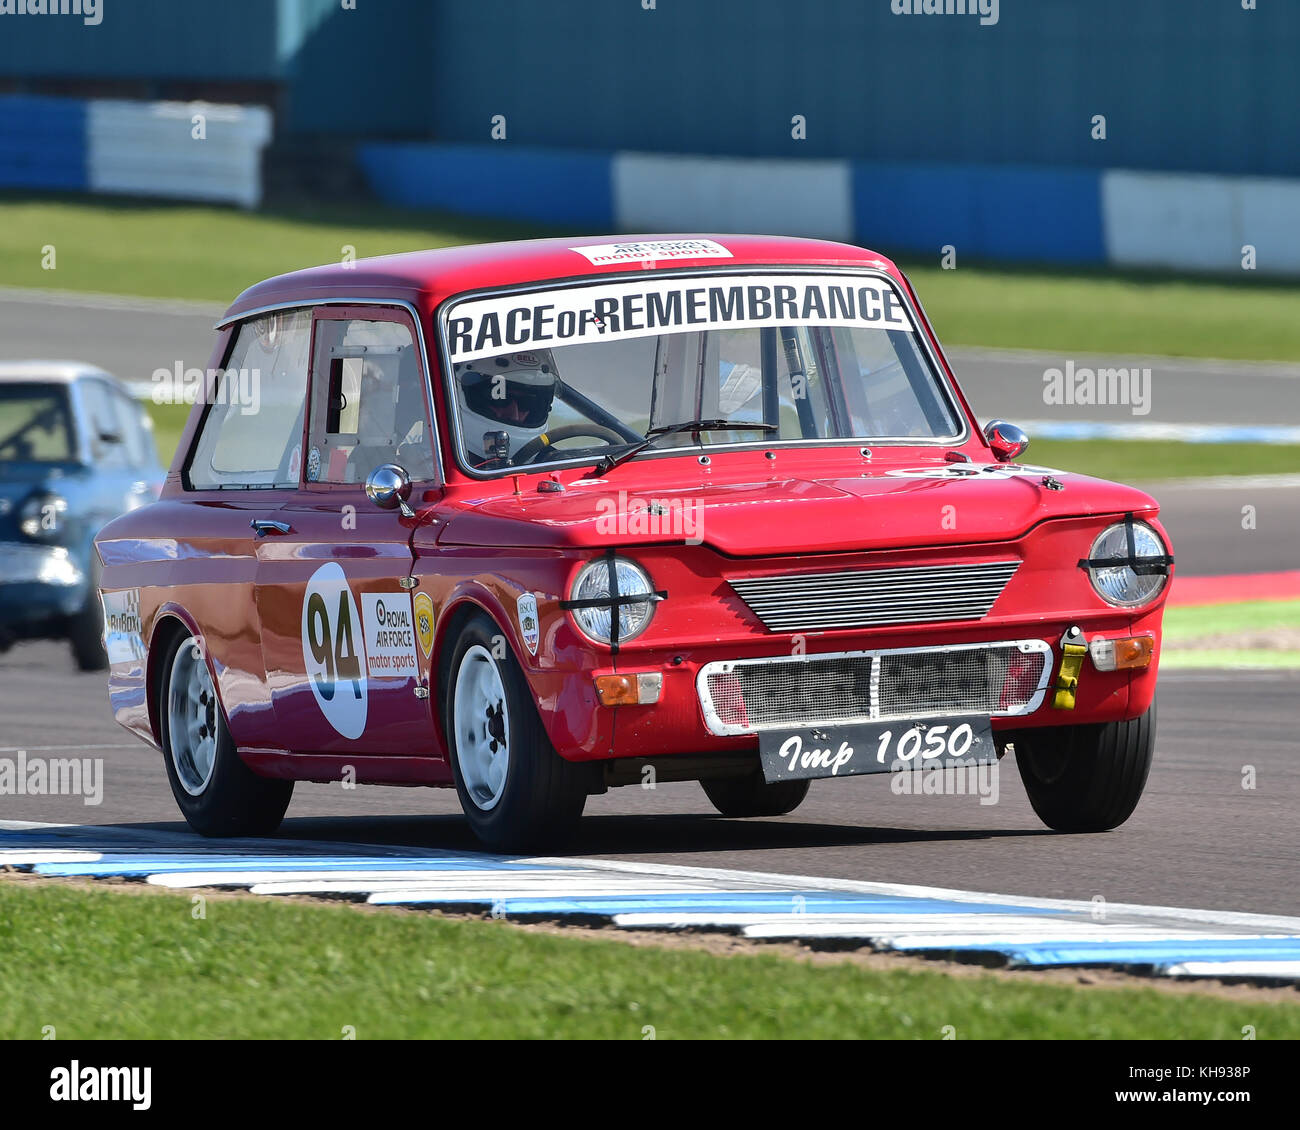 Singer Car Club Stock Photos Amp Singer Car Club Stock Images Alamy